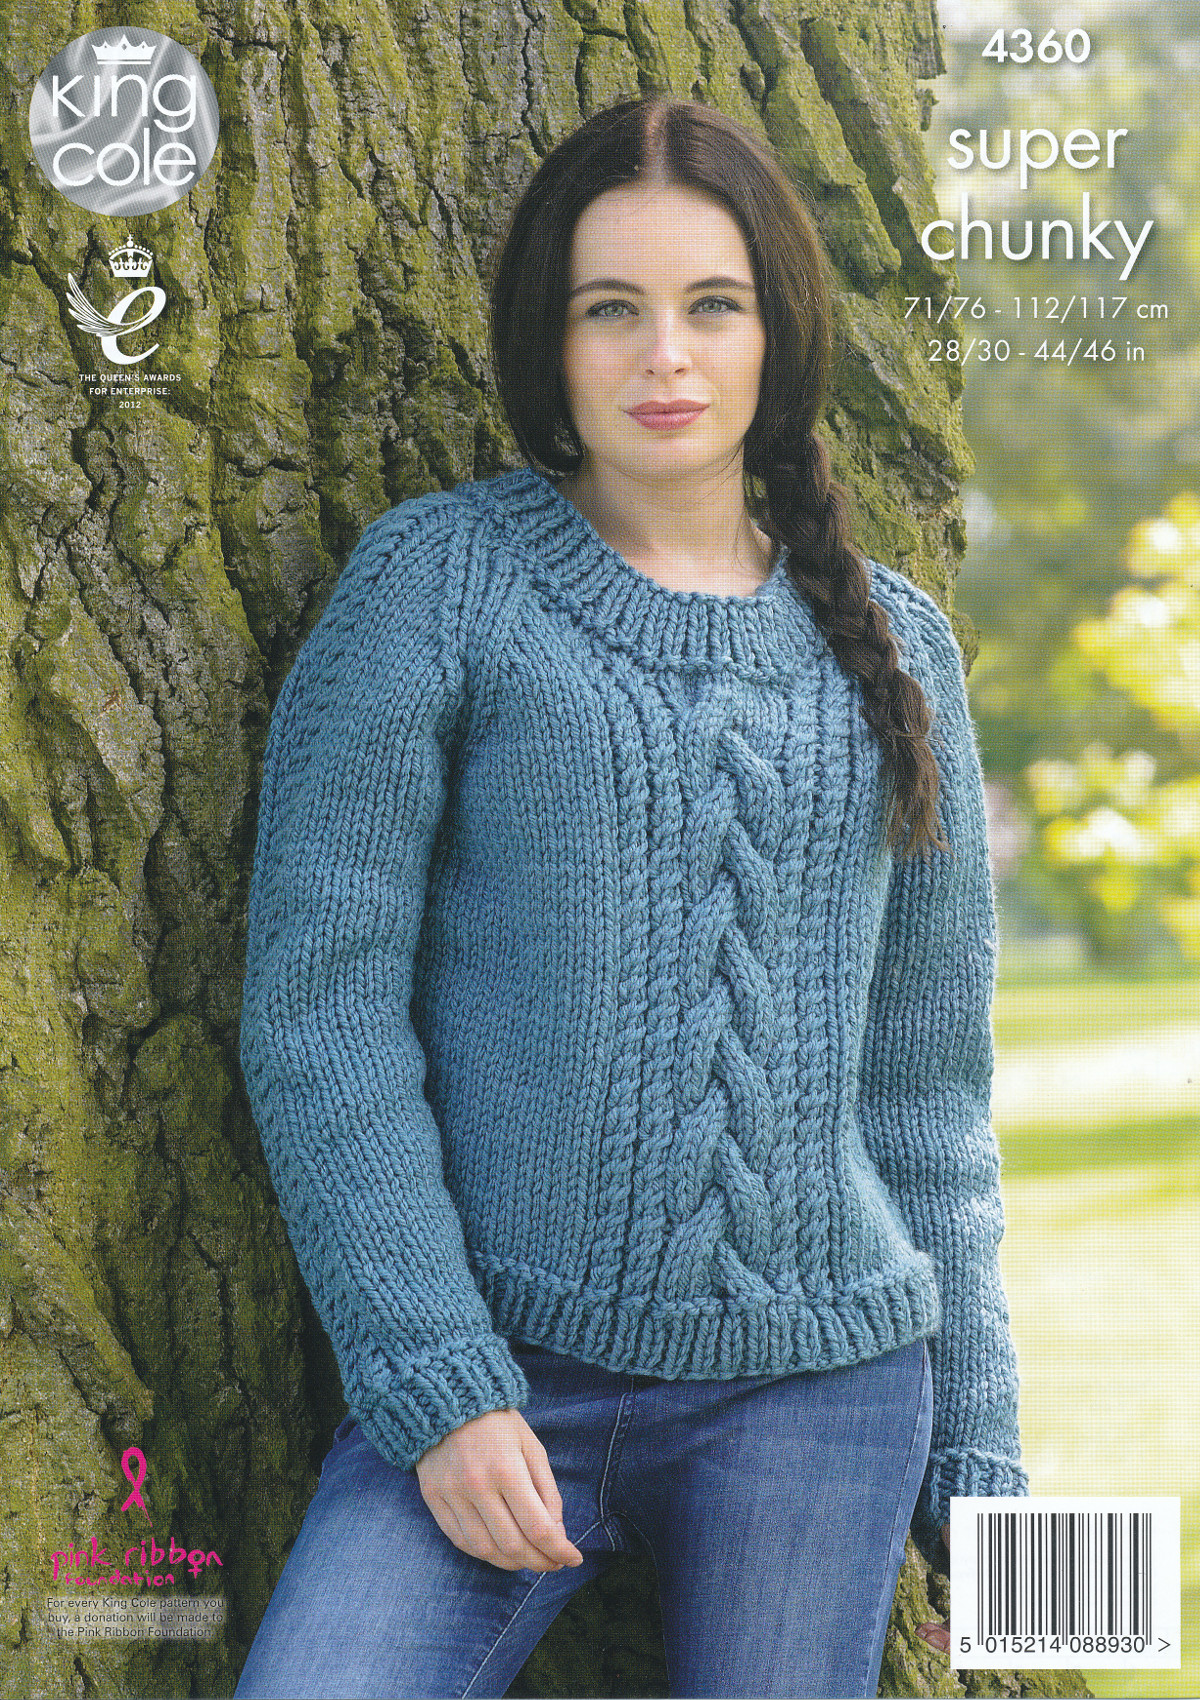 Knitting Patterns For Sweaters In The Round : Ladies Super Chunky Knitting Pattern King Cole Cable Knit ...